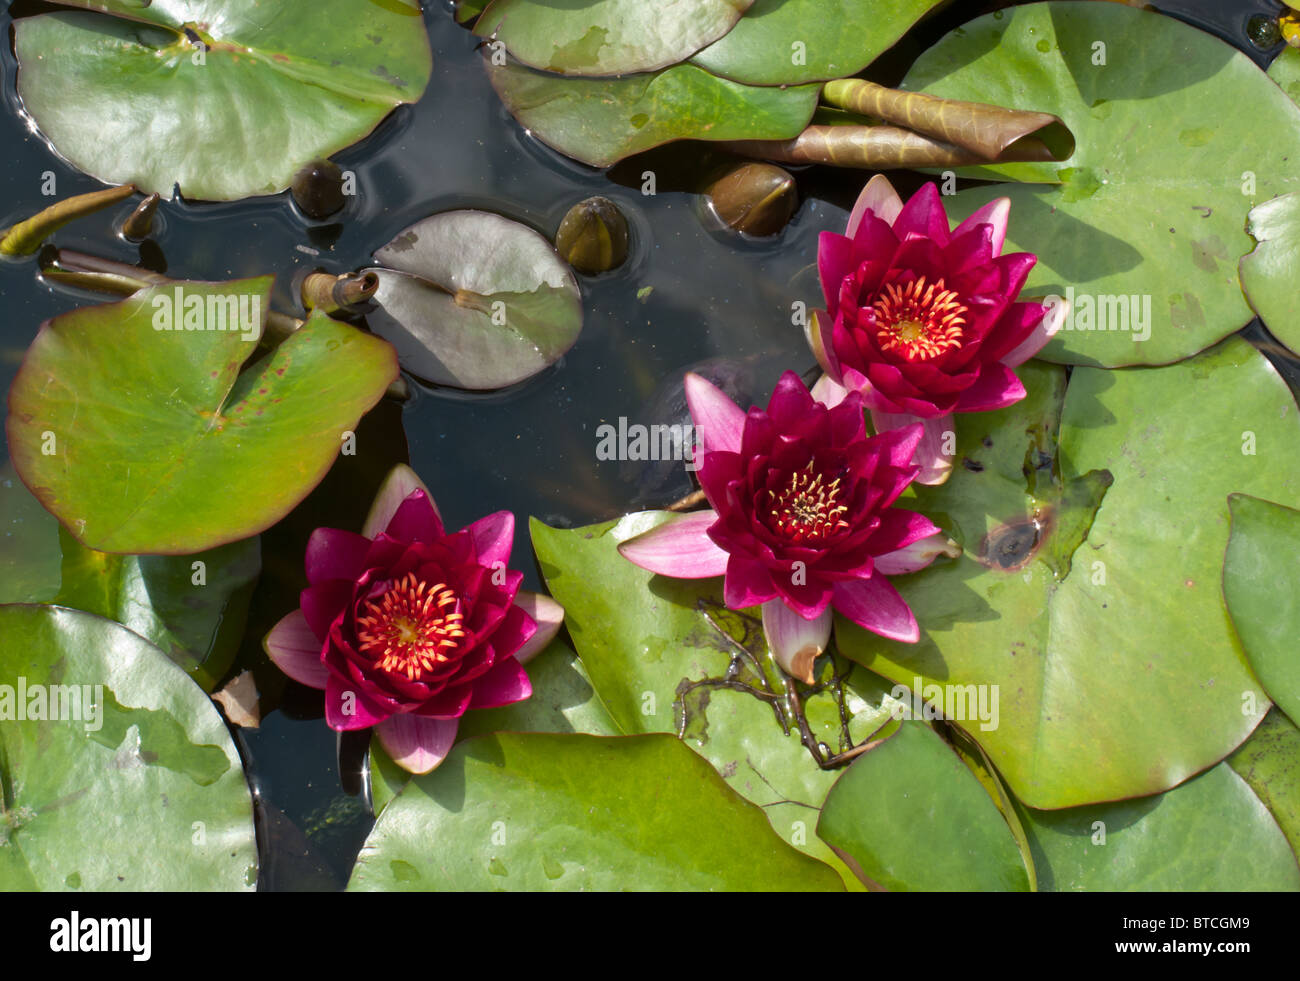 Lily Pads And Flowers On A Pond Stock Photo 32238649 Alamy